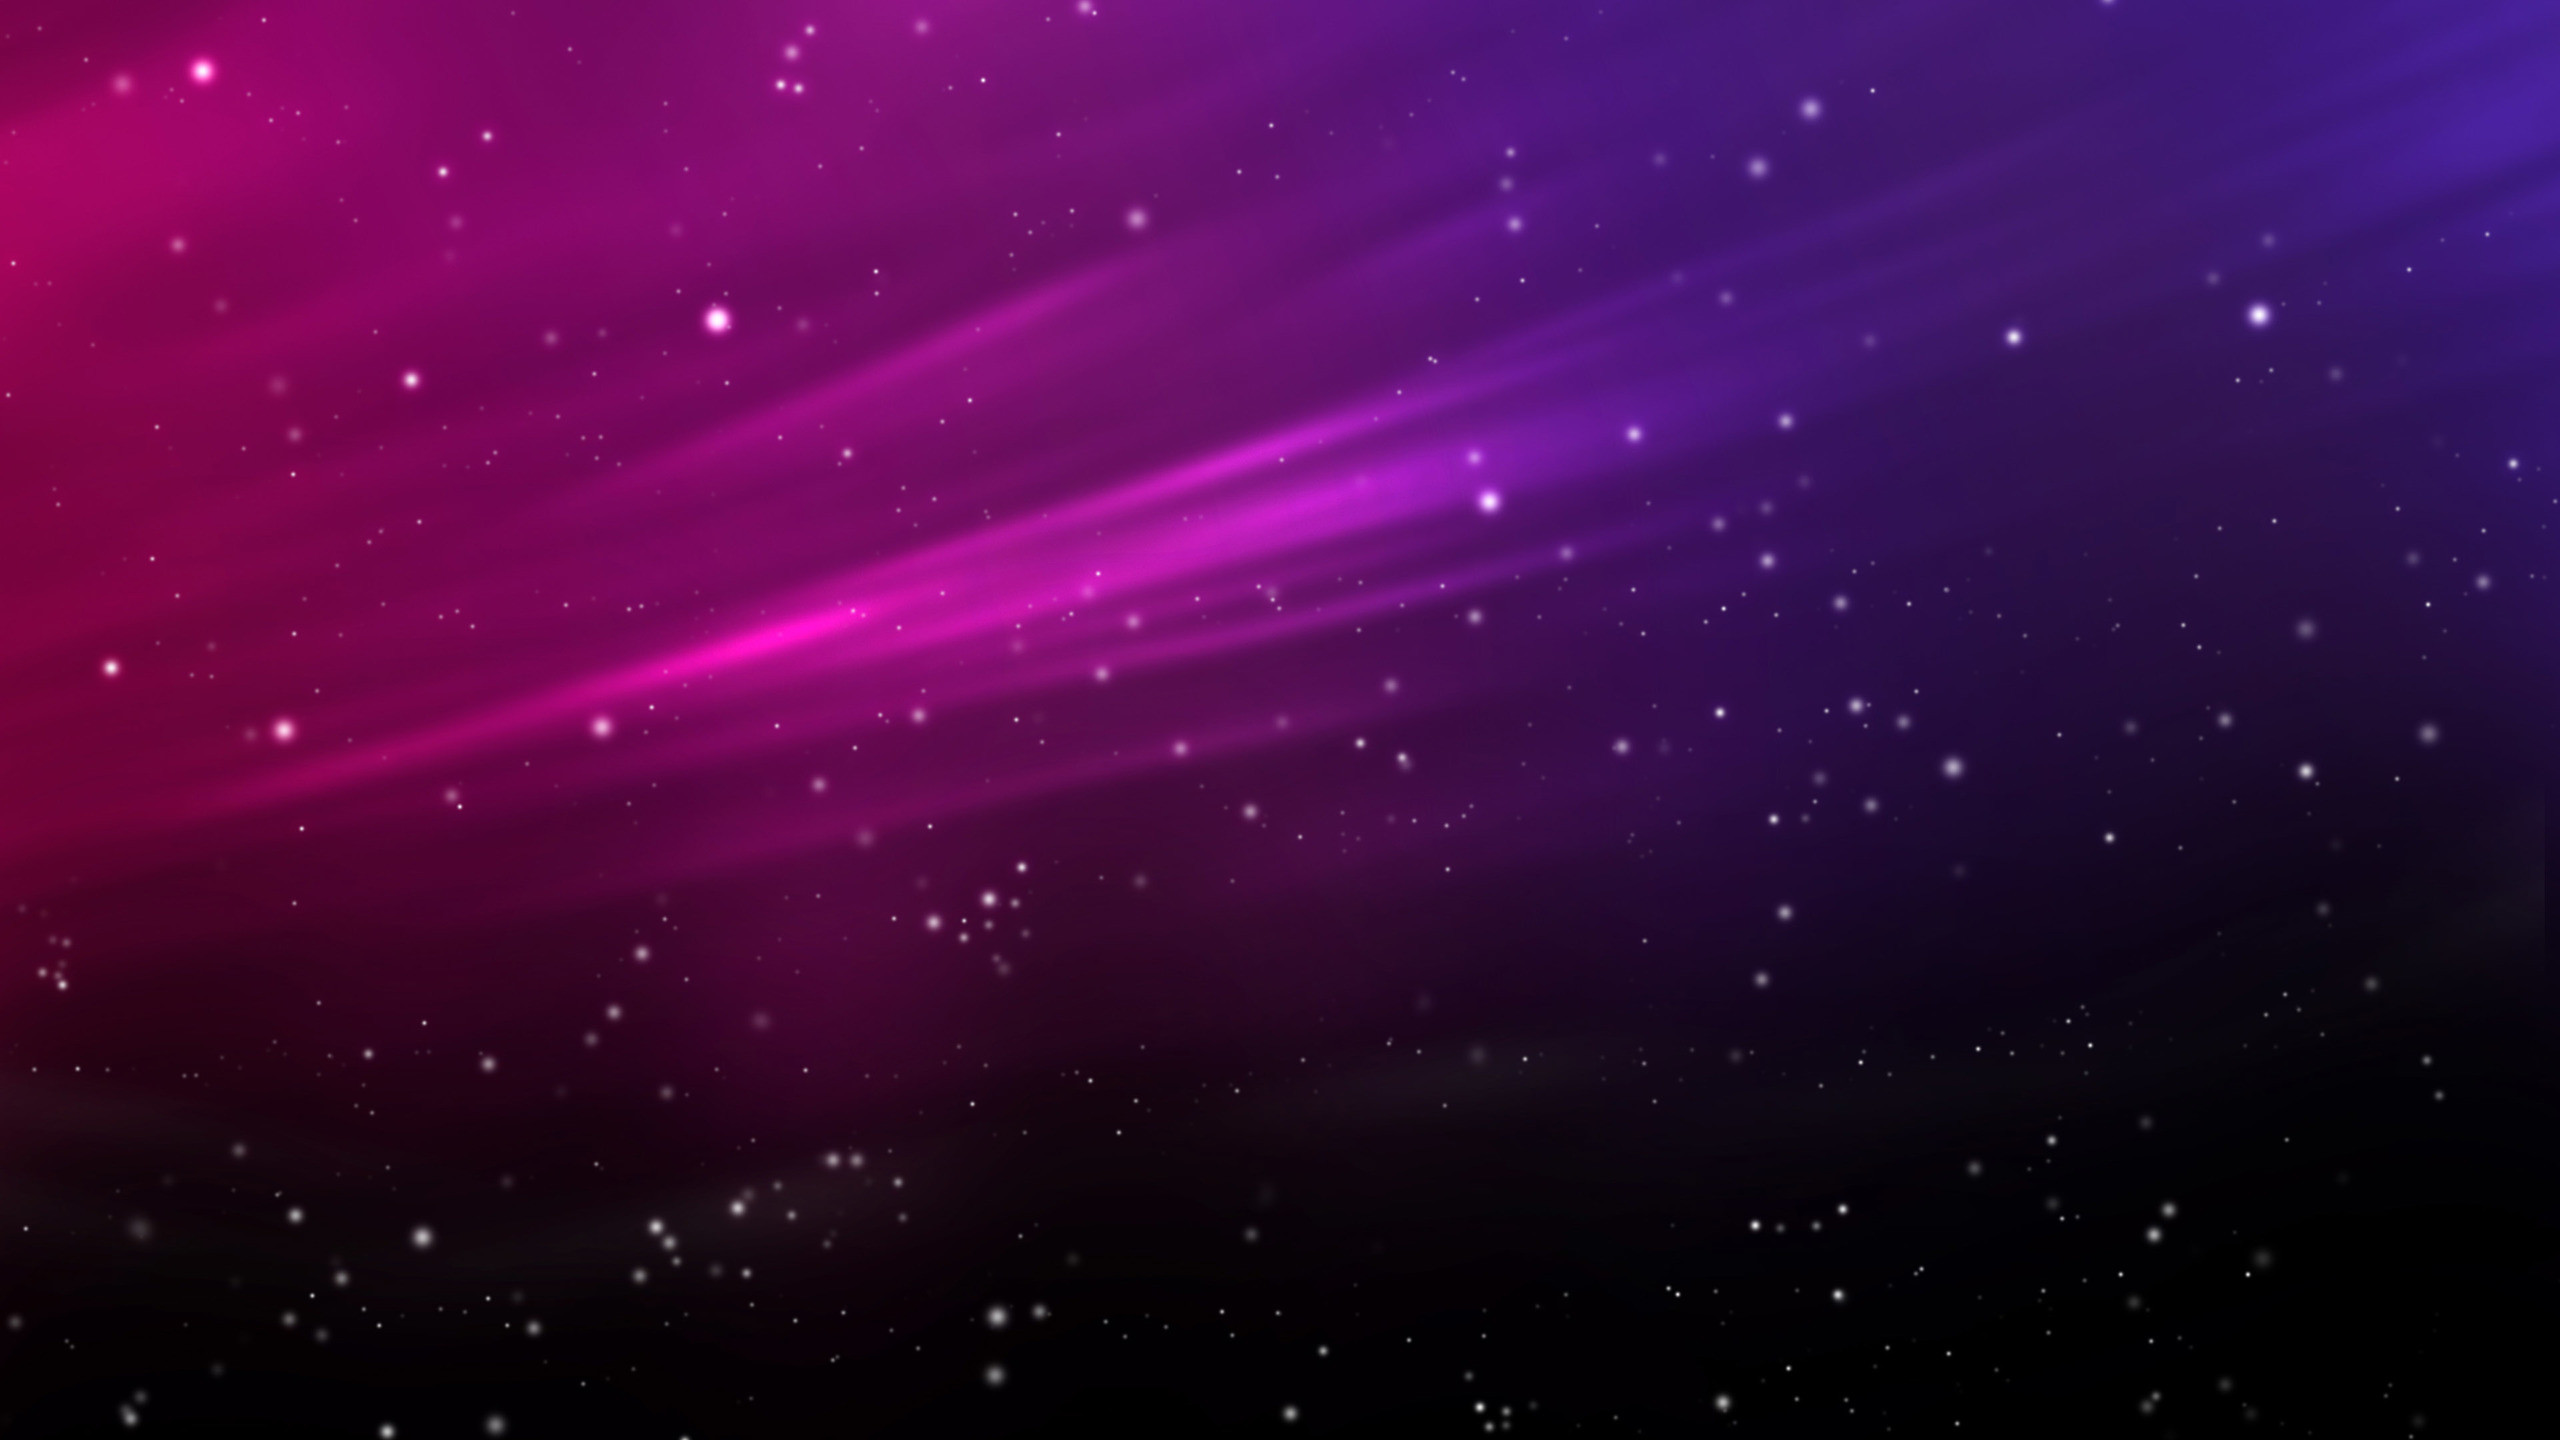 … and purple space HD Wallpaper Pink …